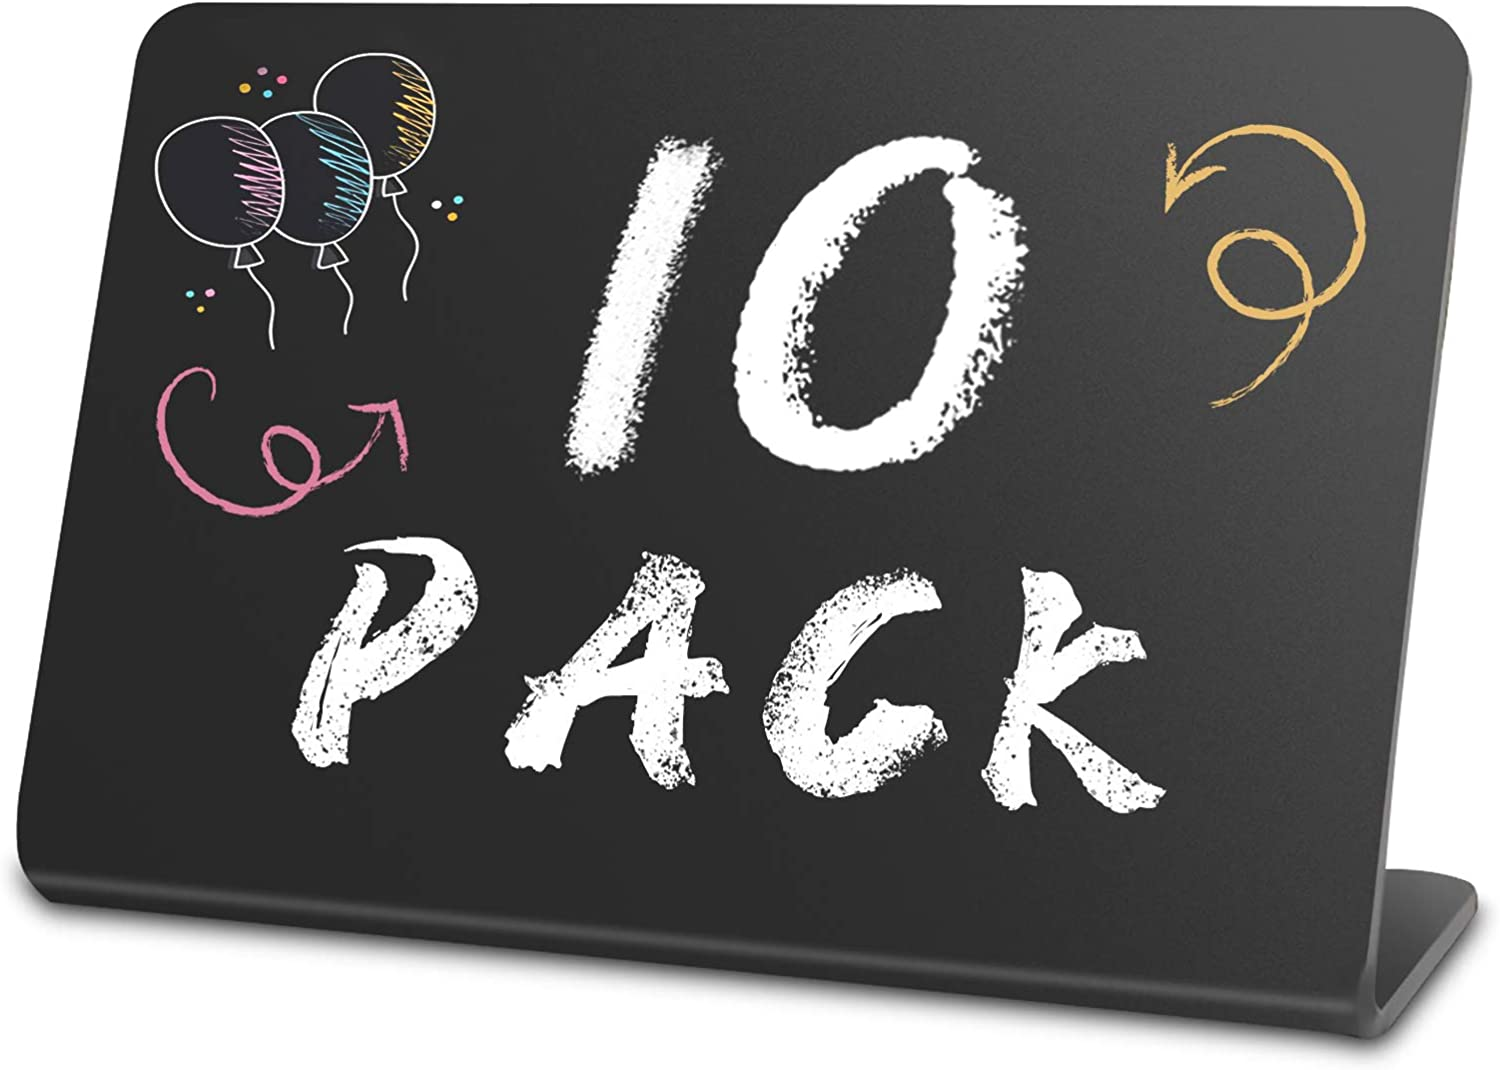 Mini Chalkboard Signs, Acrylic Mini Chalkboard Signs for Food, Small Message Board Signs for Party Buffet Table, Chalkboard Food Labels for Liquid Chalk Markers and Normal Chalks (3 x 4 Inch, 10 Pack)